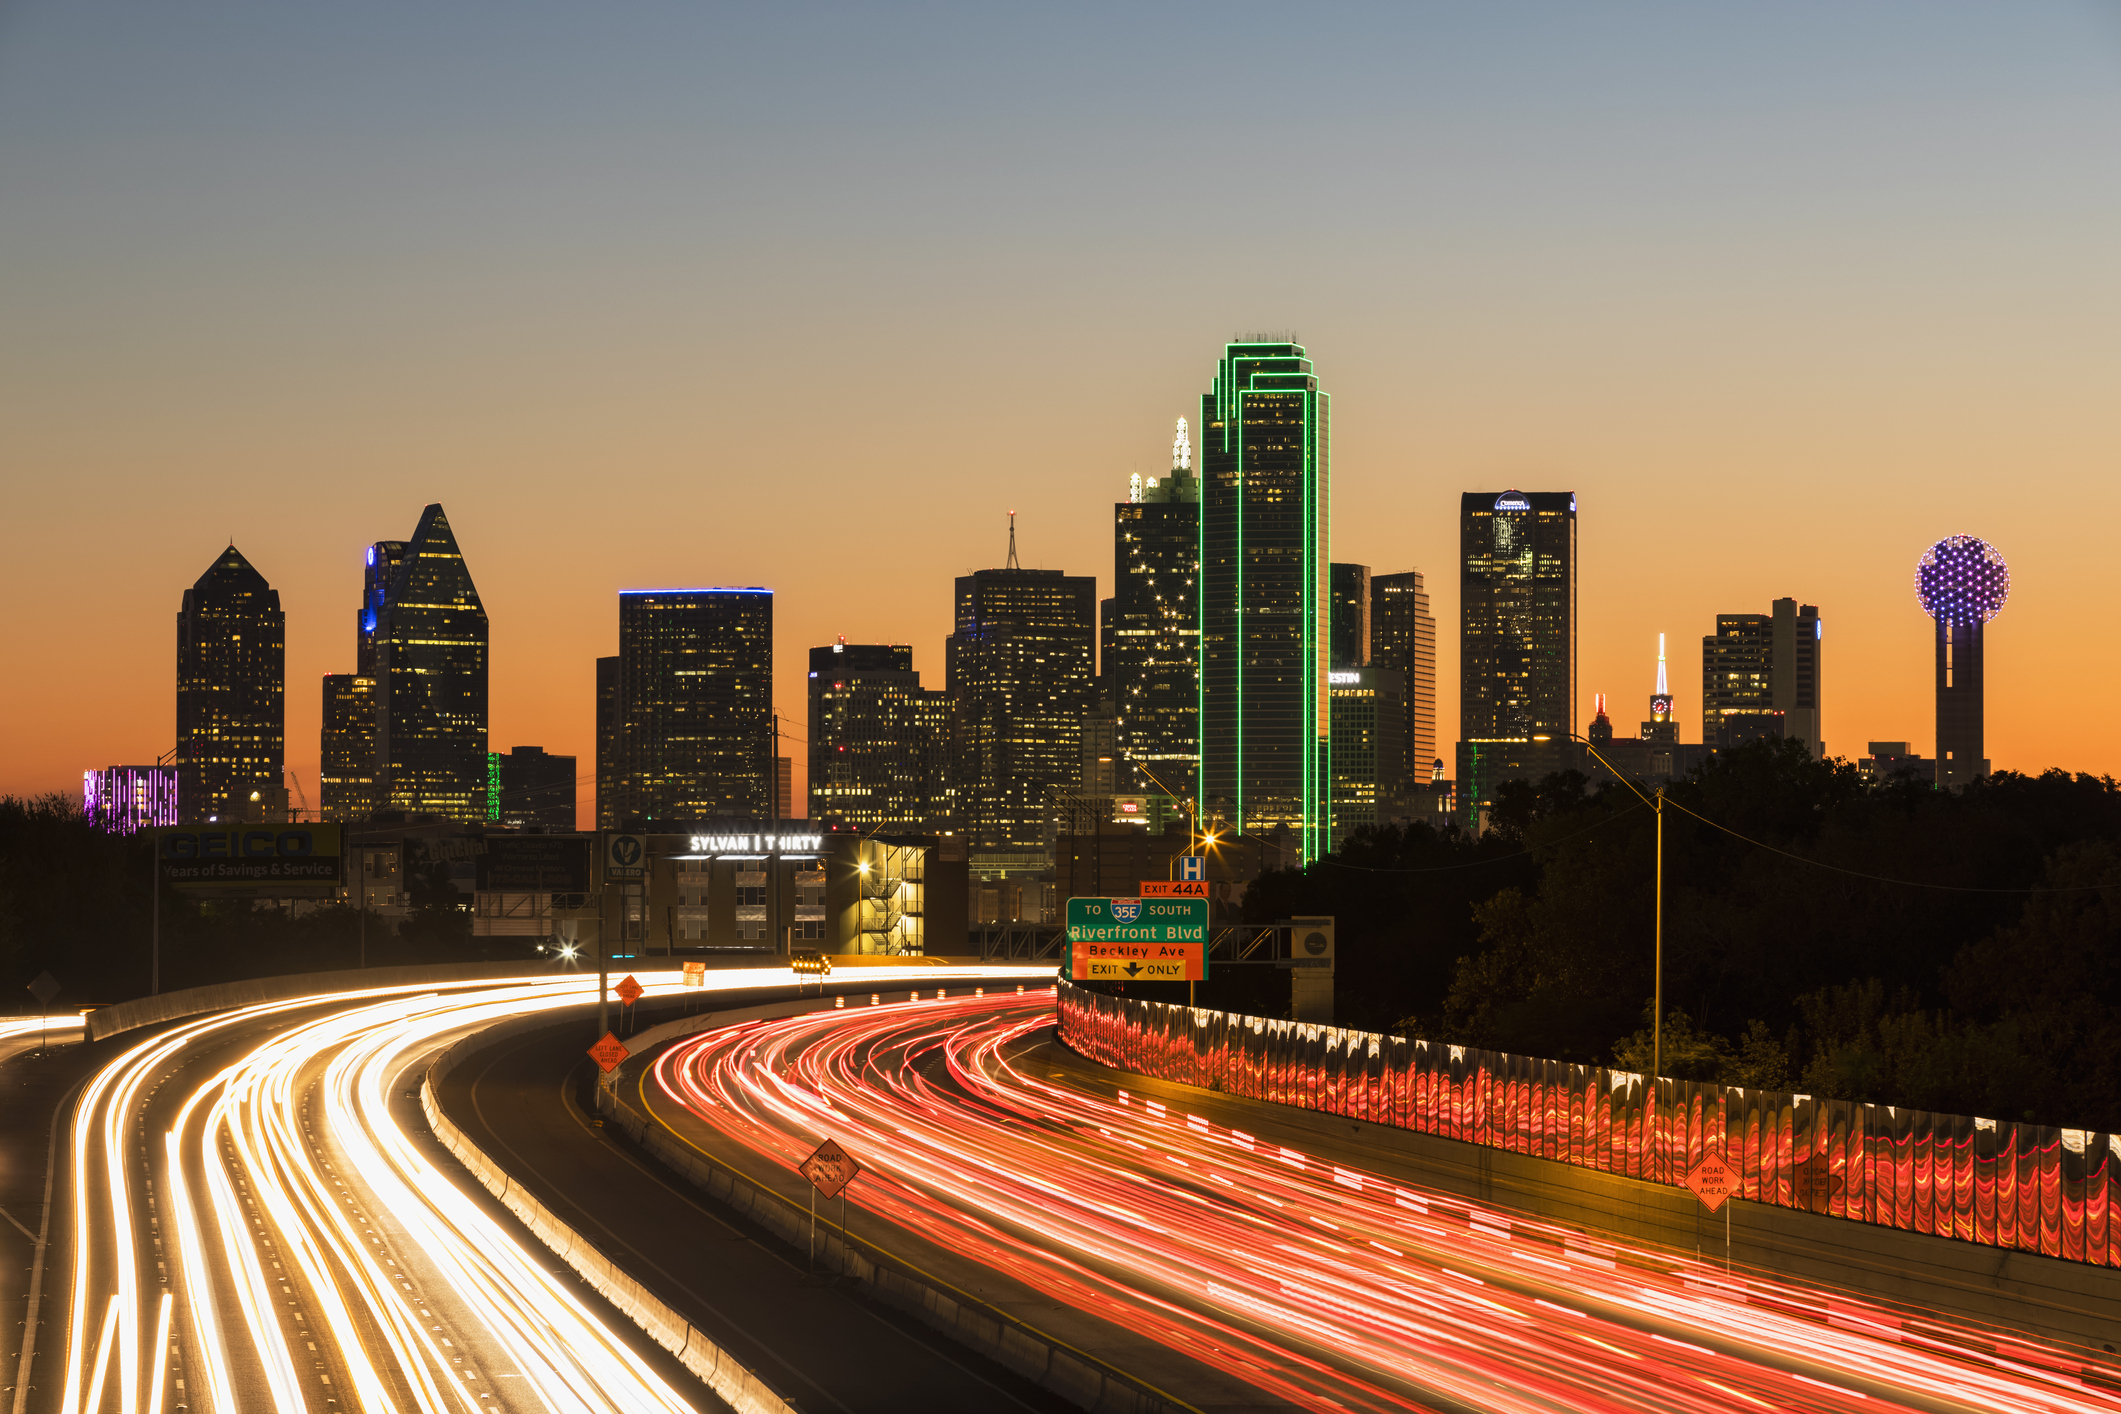 USA, Texas, Dallas, skyline and Tom Landry Freeway, Interstate 30 at night